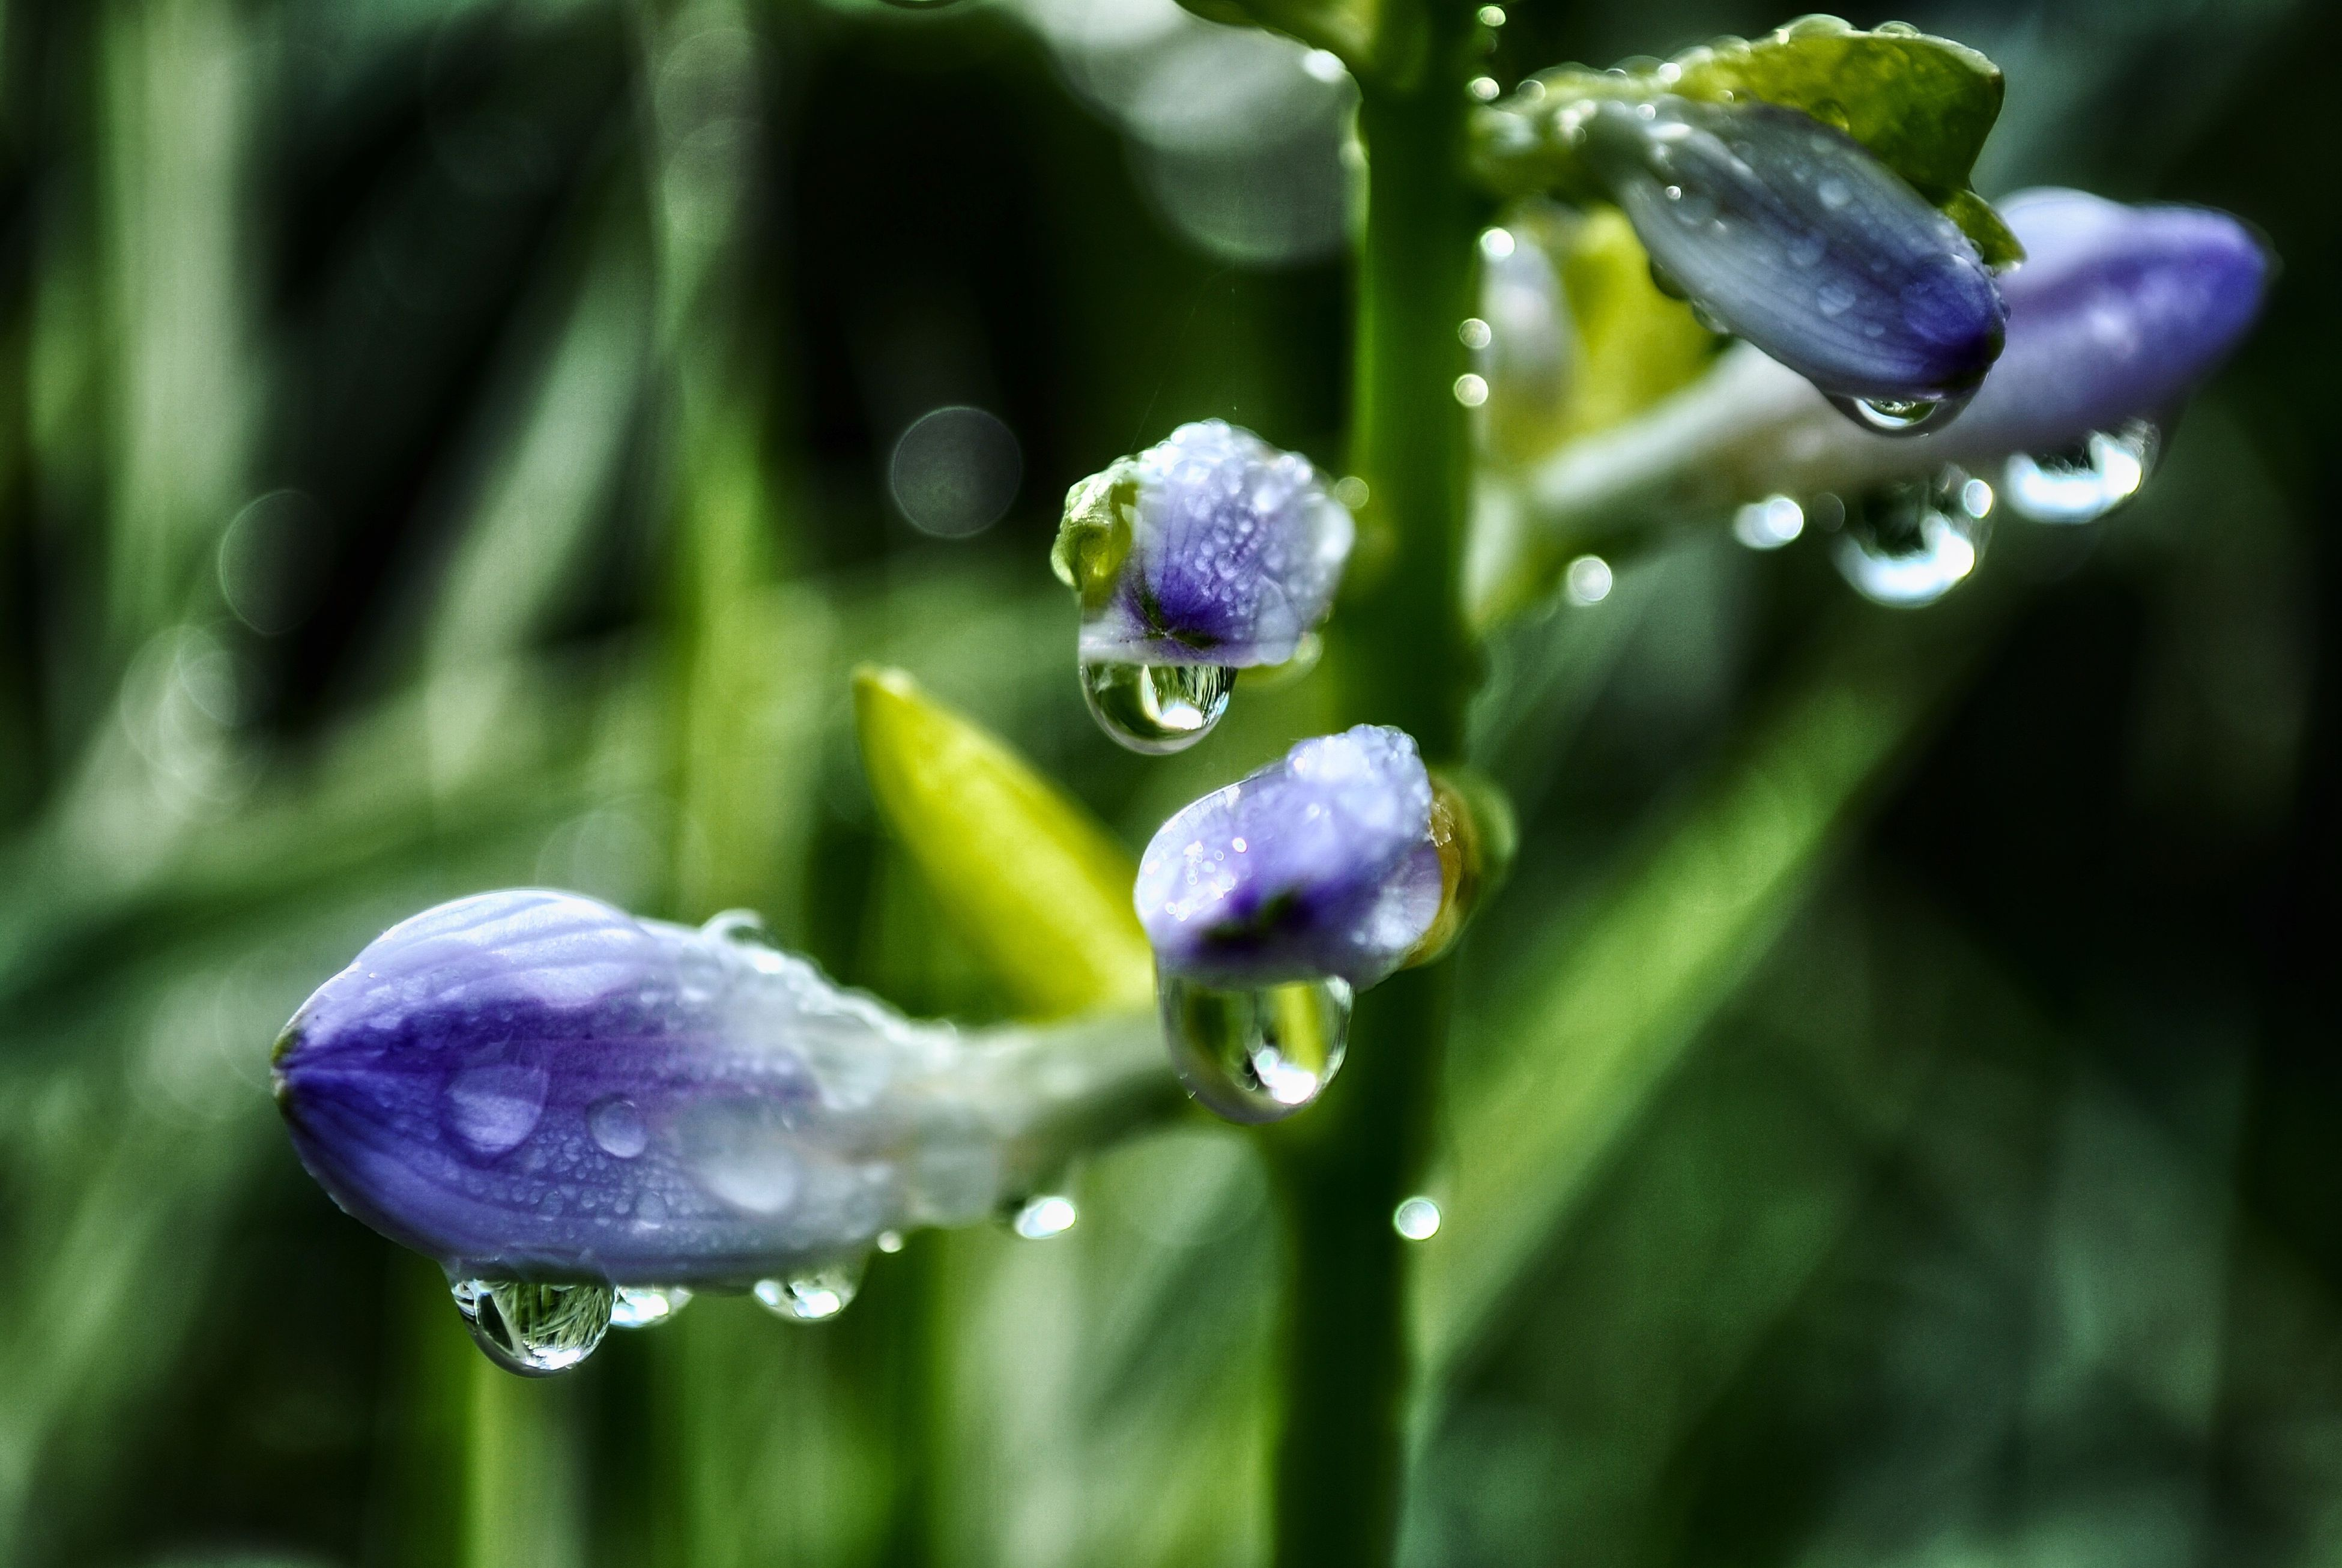 drop, water, wet, freshness, fragility, close-up, focus on foreground, water drop, dew, droplet, beauty in nature, blue, growth, flower, raindrop, purity, purple, nature, weather, plant